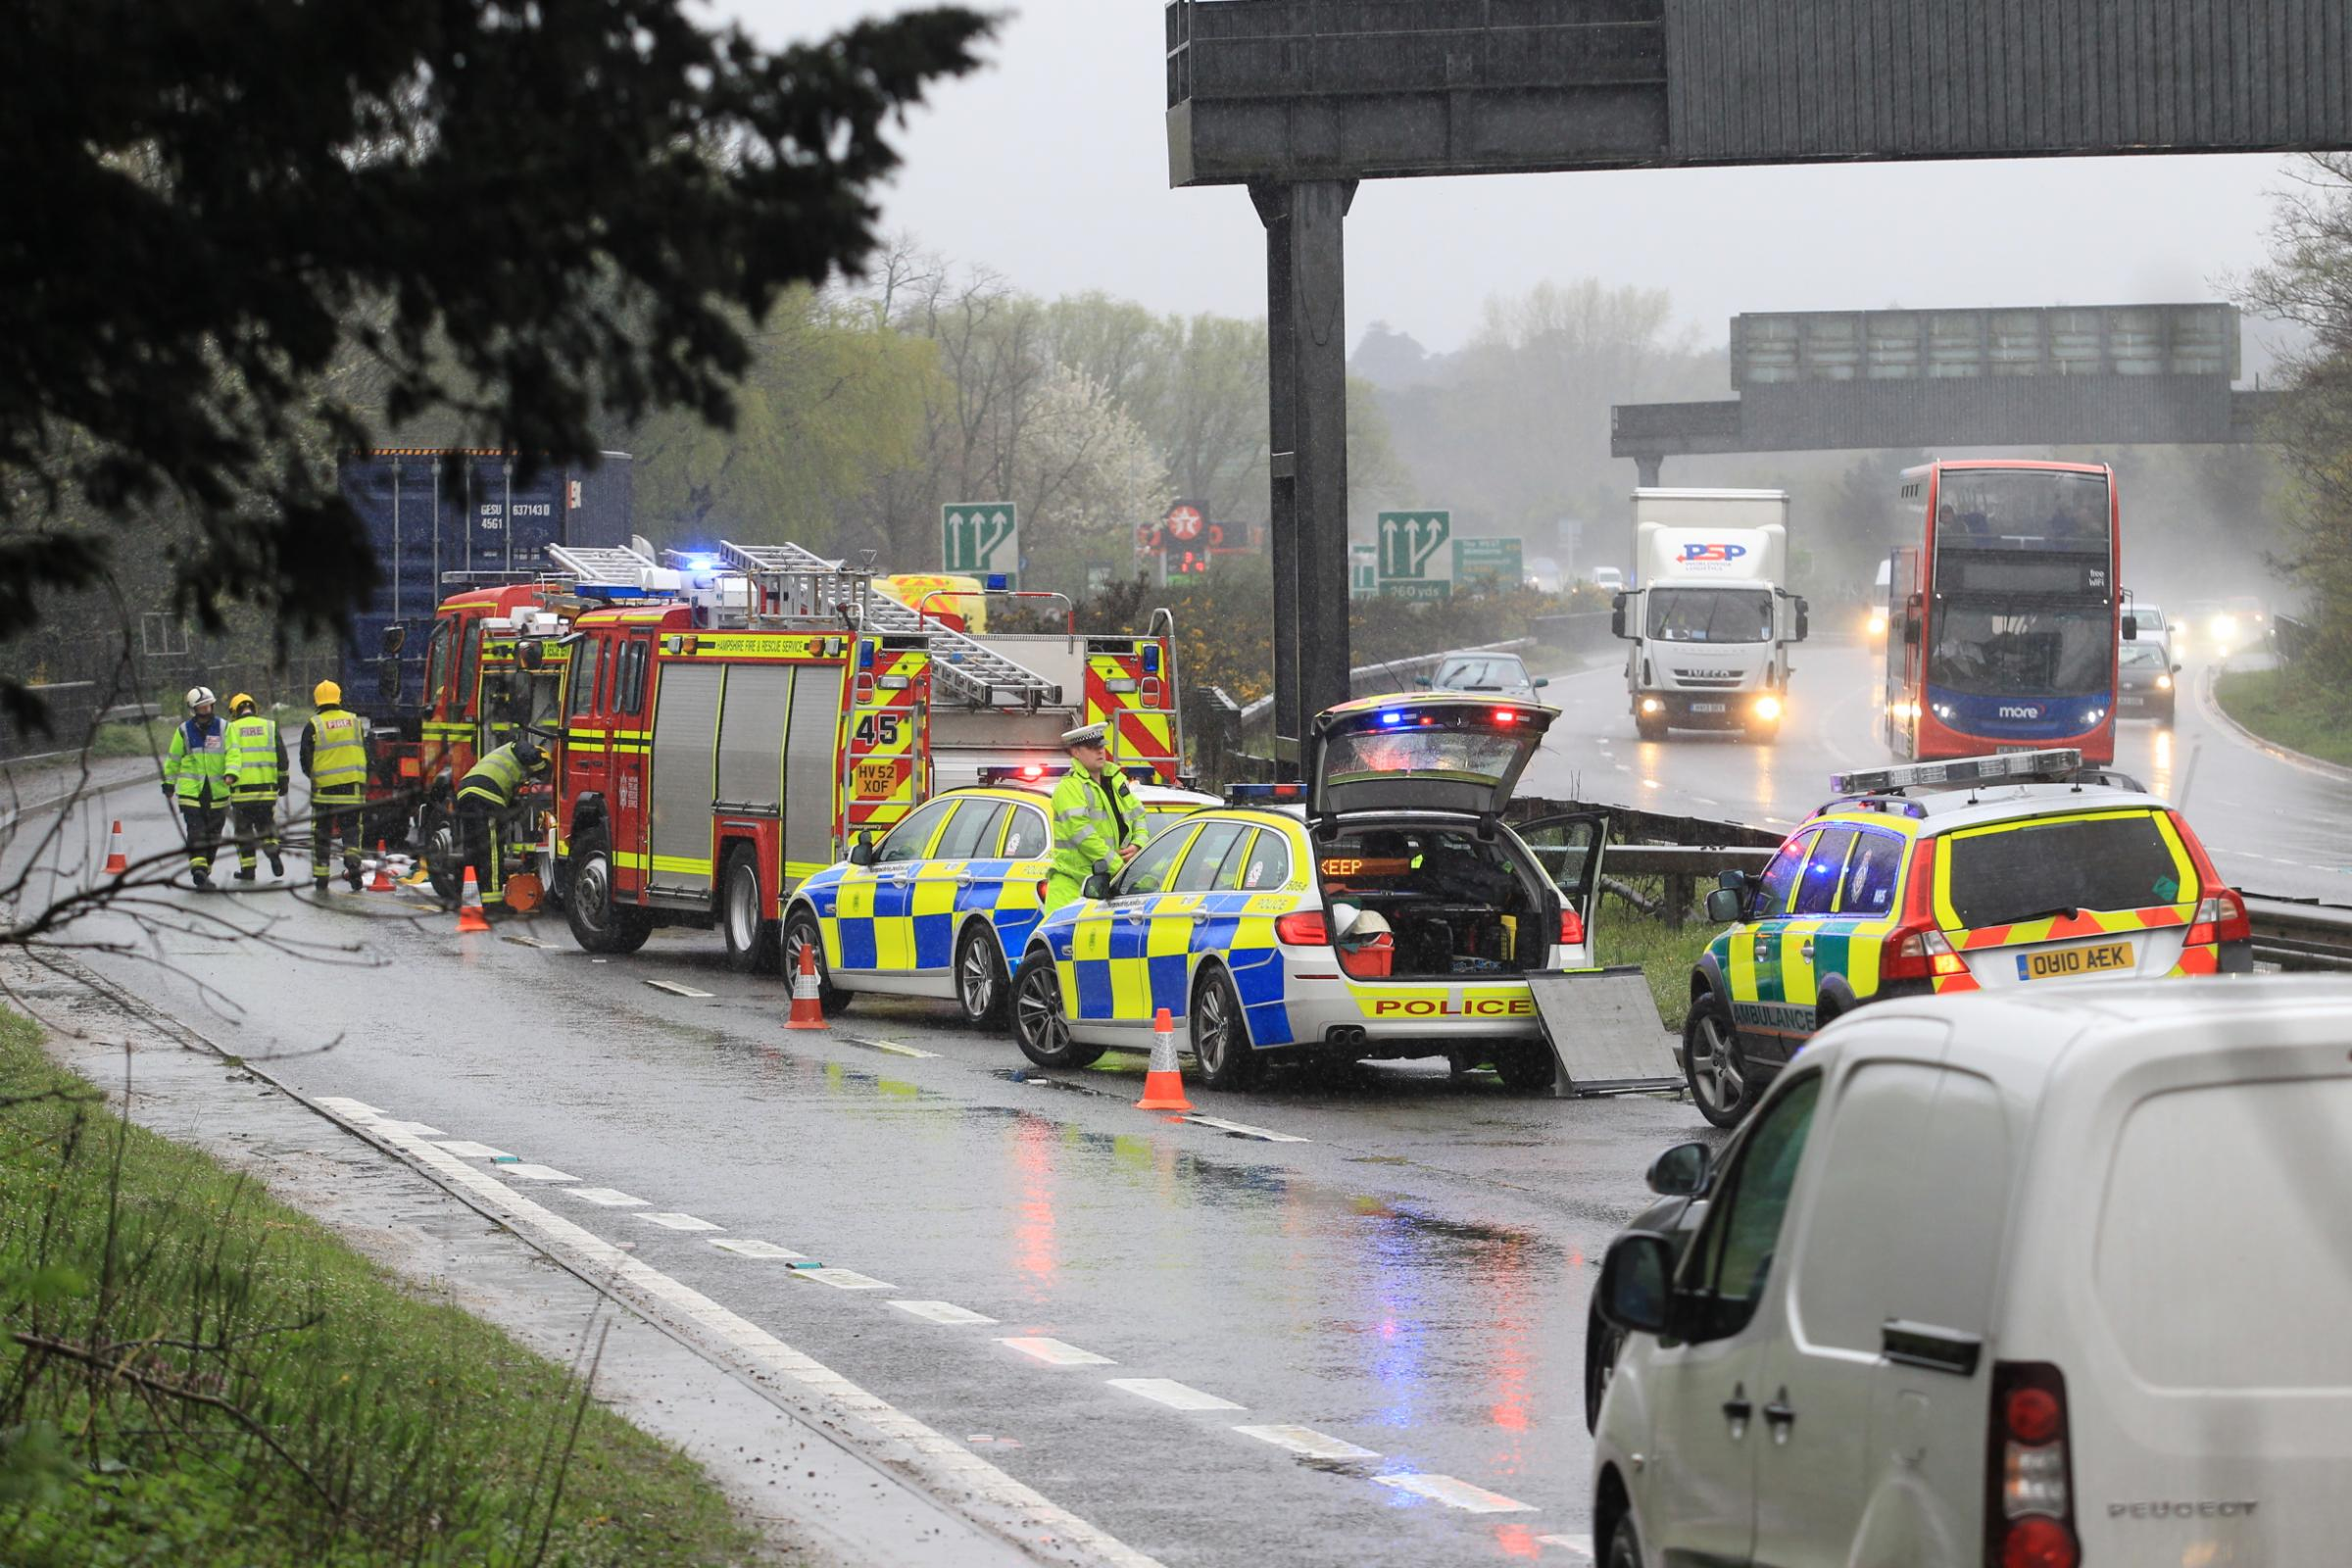 VIDEO: Severe delays after crash between lorry and van on A31 near Ringwood